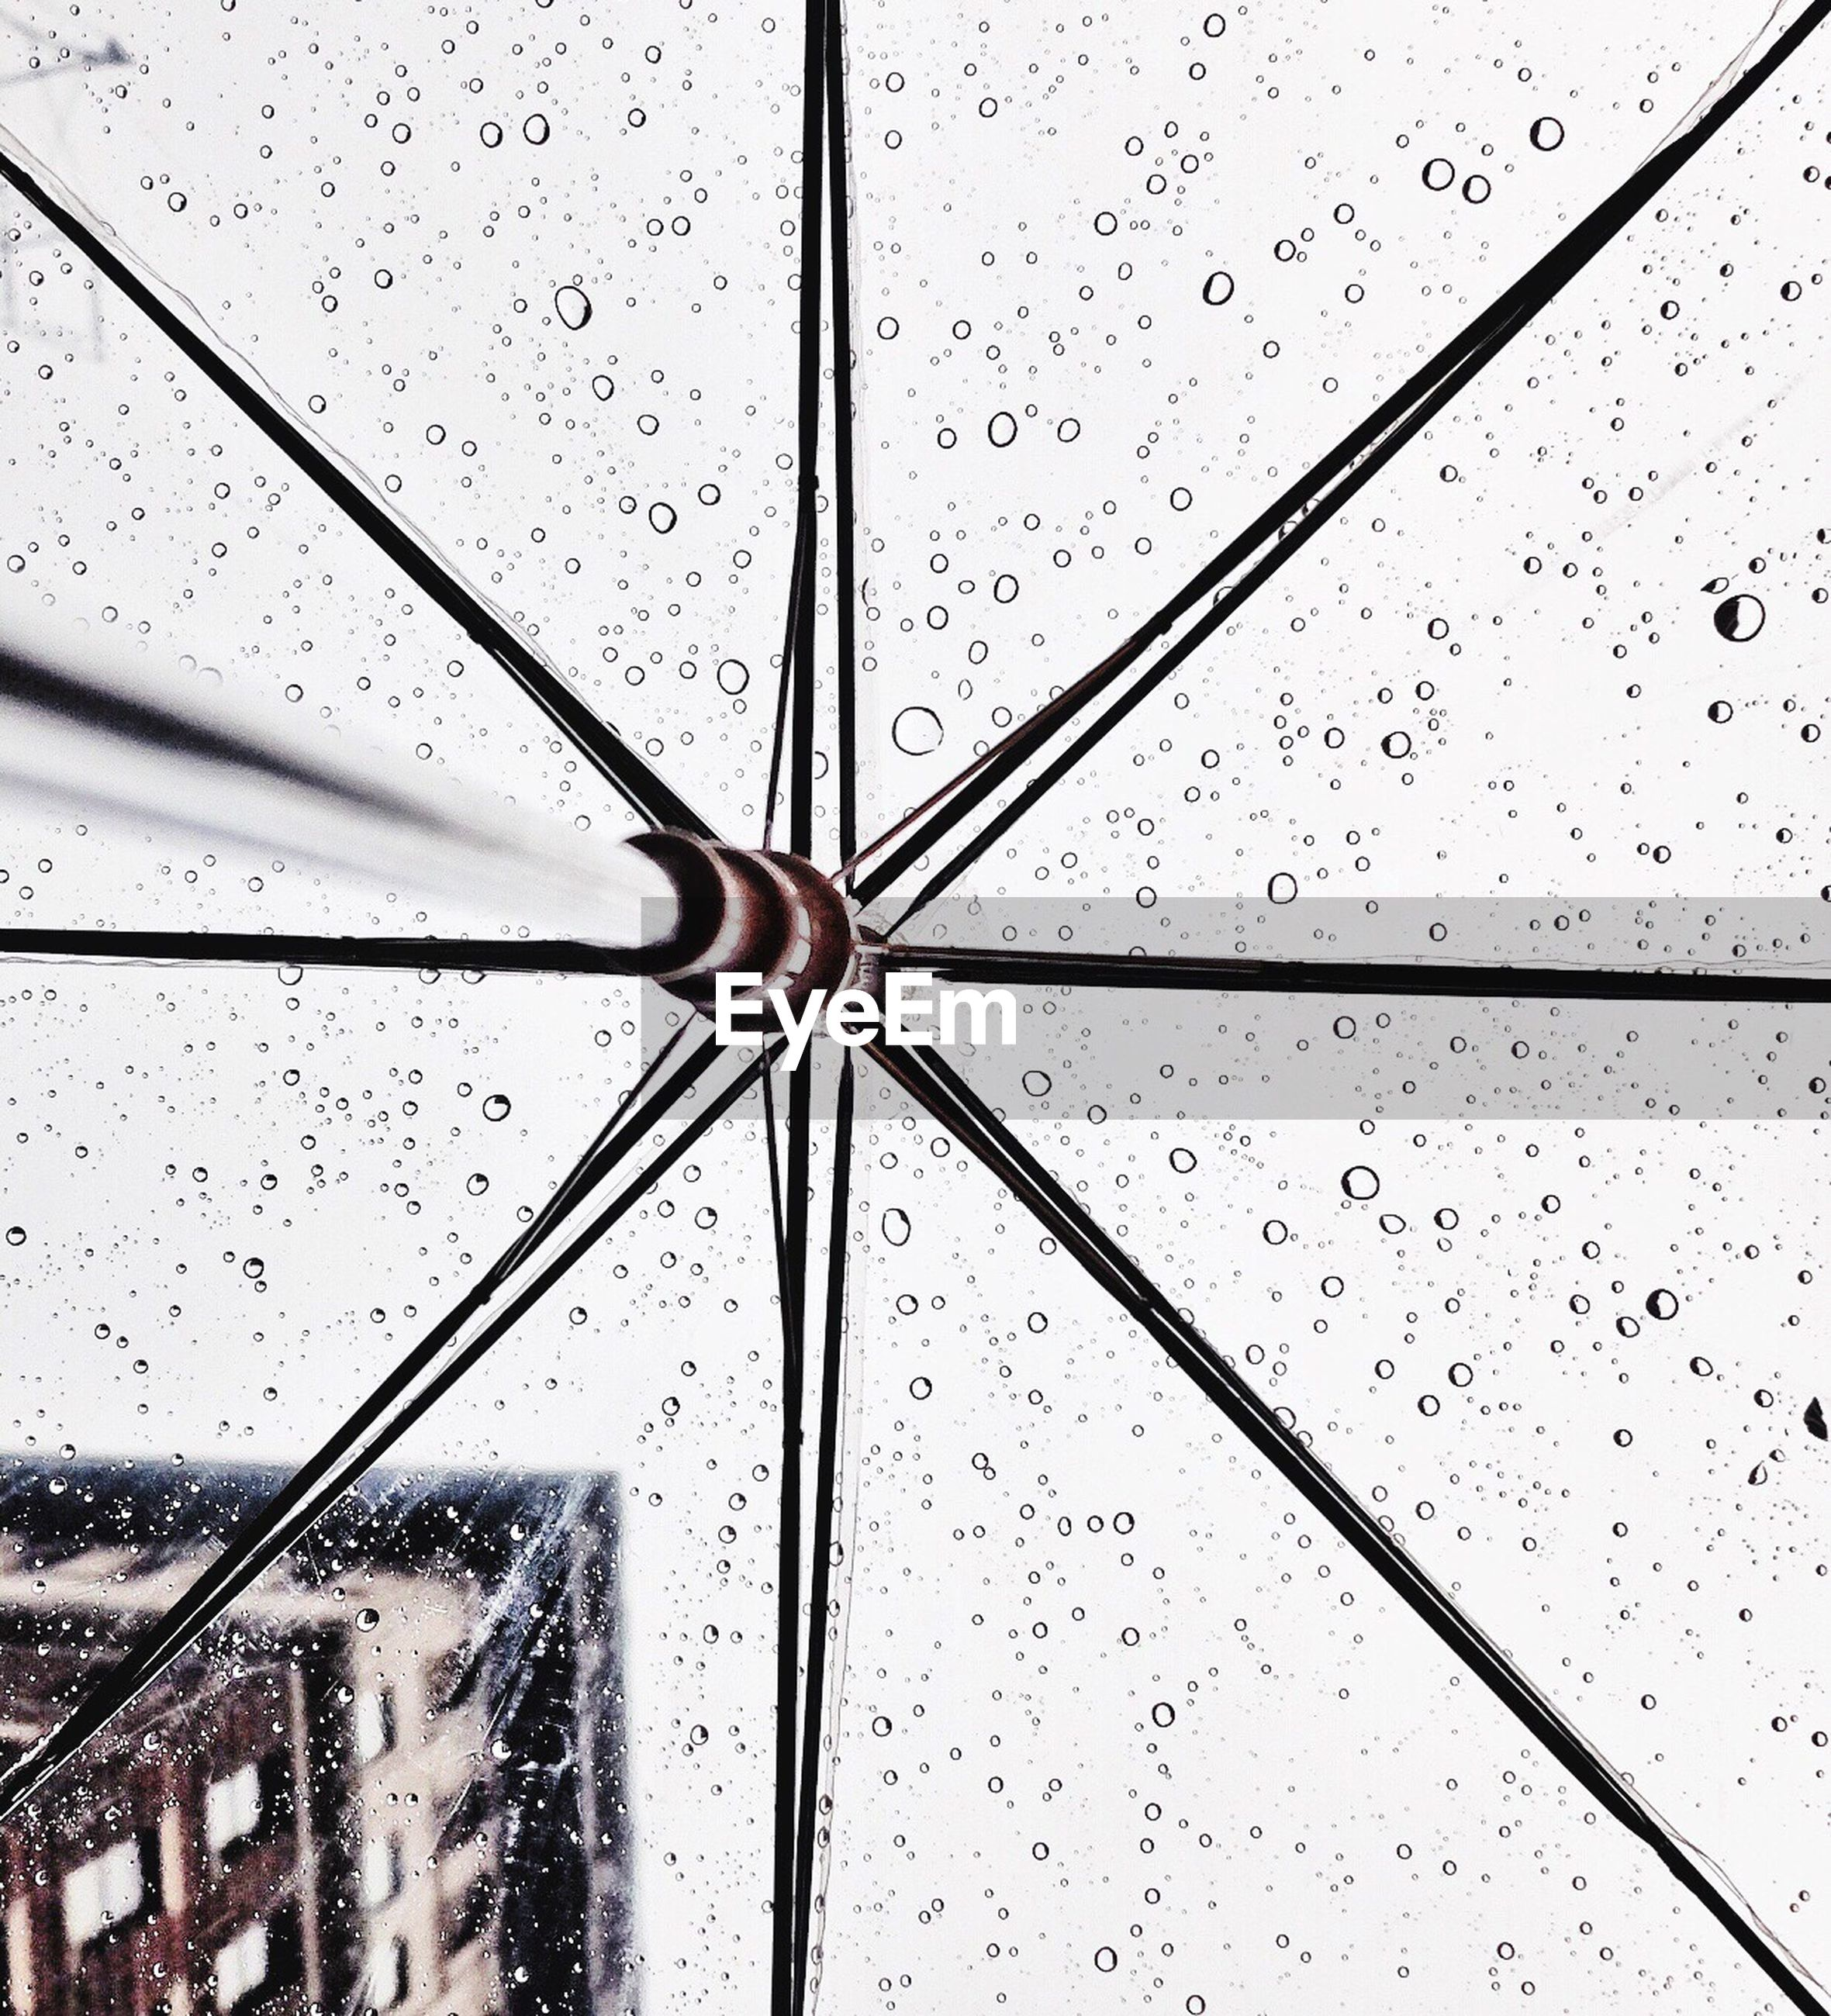 Low angle view of wet transparent umbrella against sky during monsoon